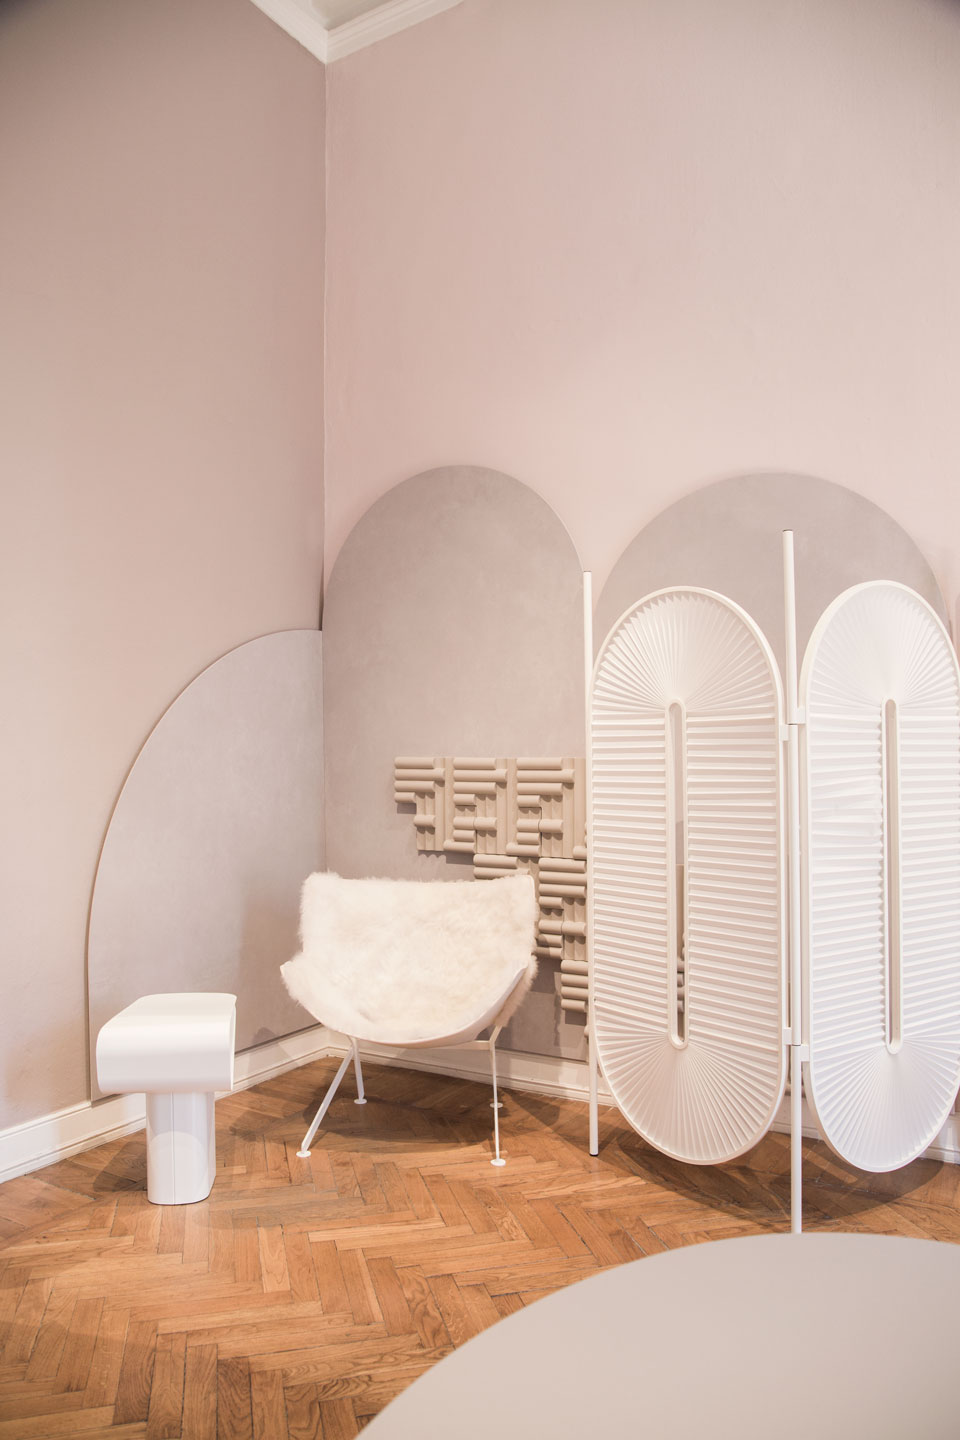 Vibia - Stories - Fuorisalone experience - 1731